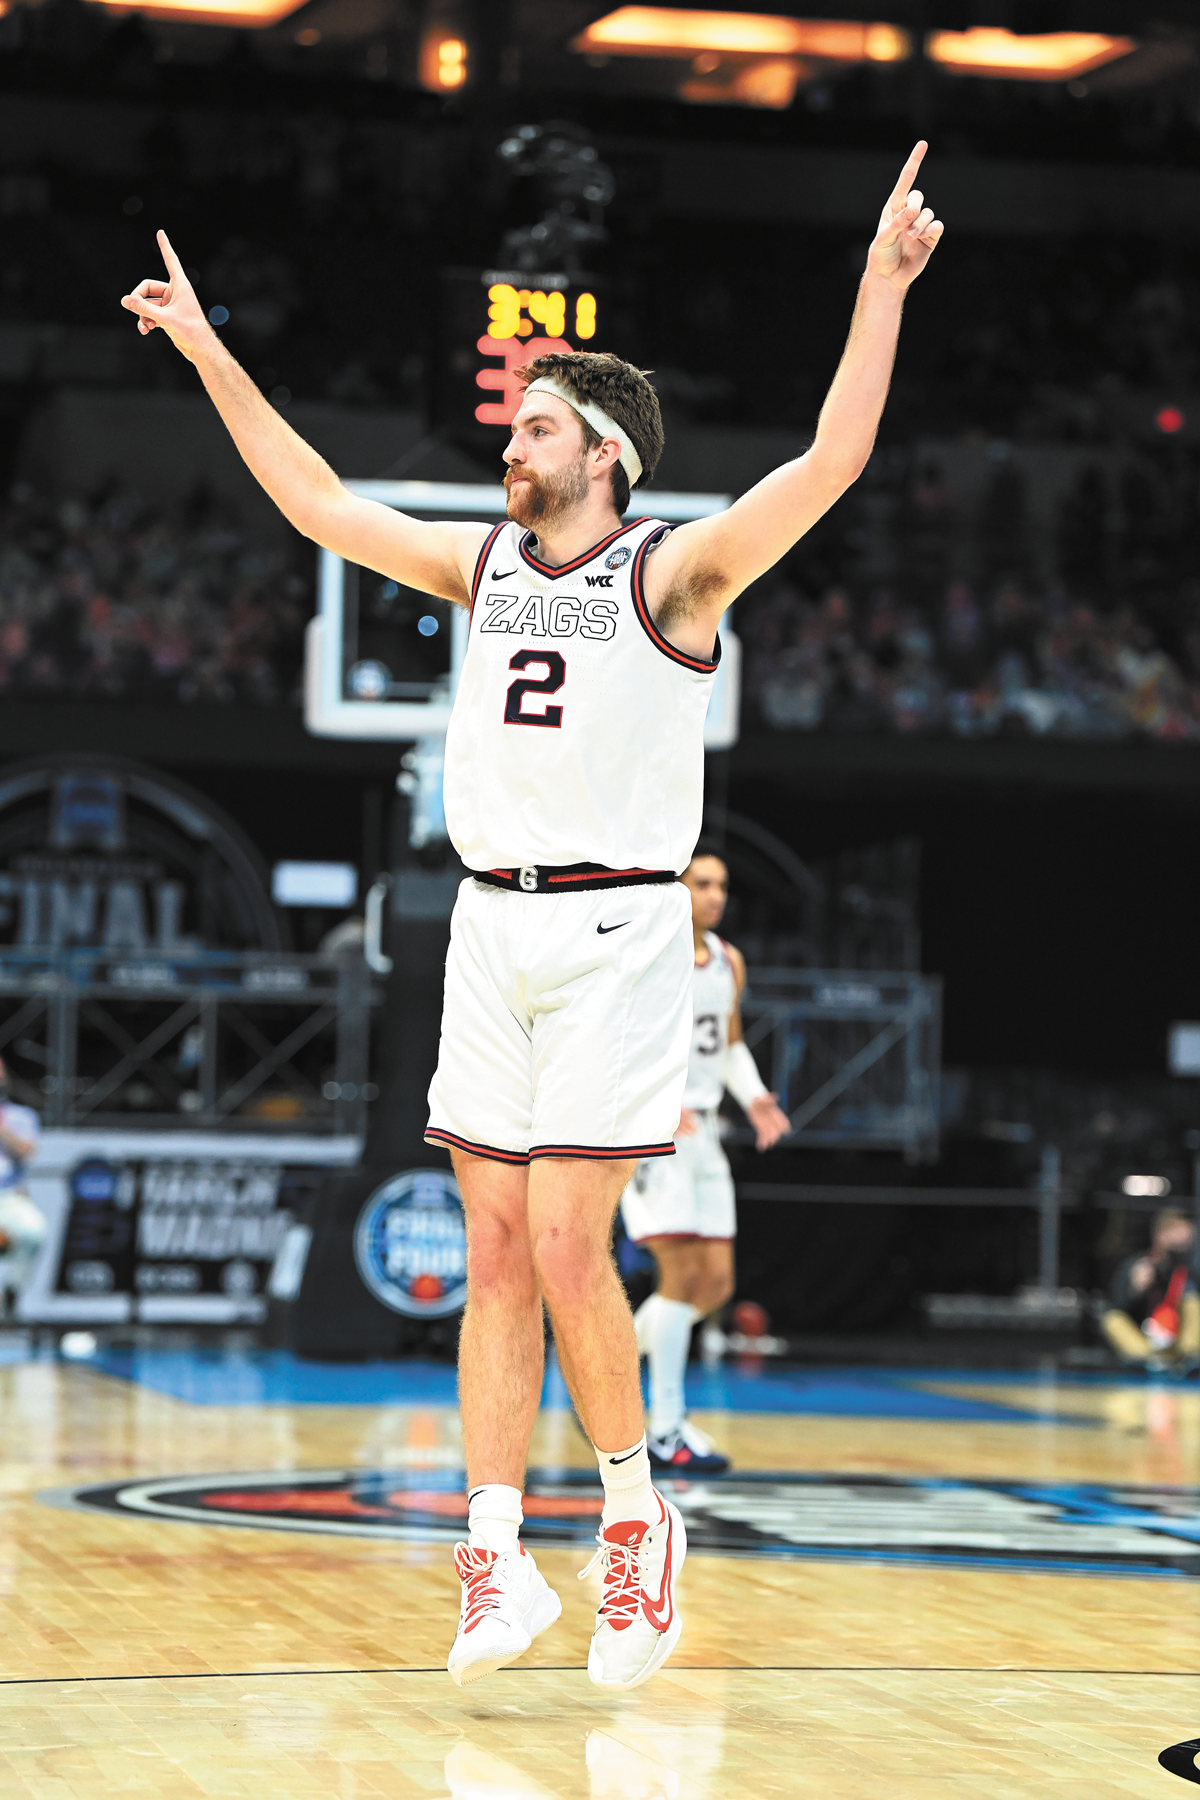 Drew Timme made something of an old-school decision off the court by opting to return to college rather than leaving early for the NBA. And for that, we thank you. - NCAA PHOTO